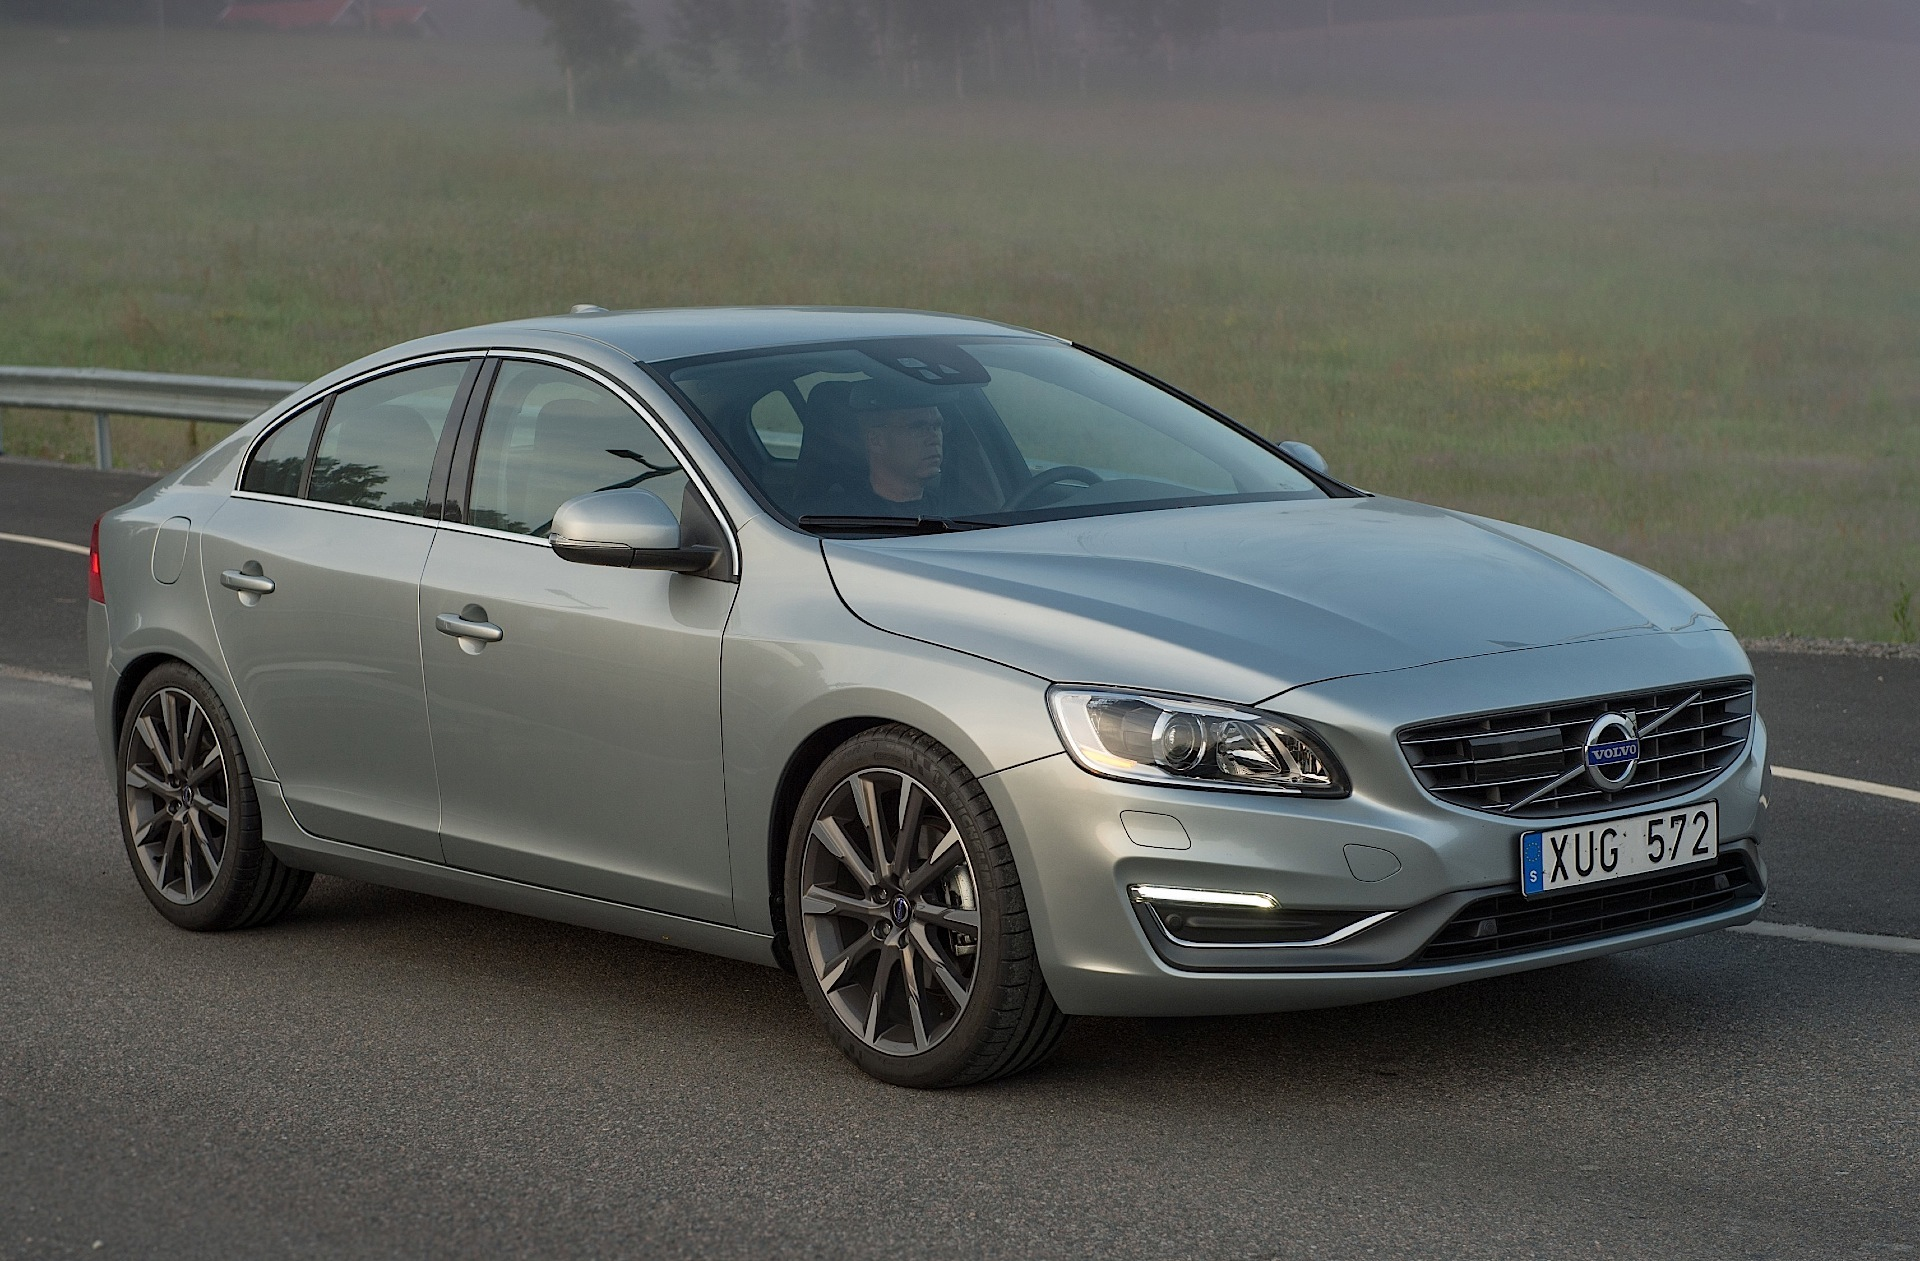 volvo s60 specs 2013 2014 2015 2016 2017 2018 autoevolution. Black Bedroom Furniture Sets. Home Design Ideas